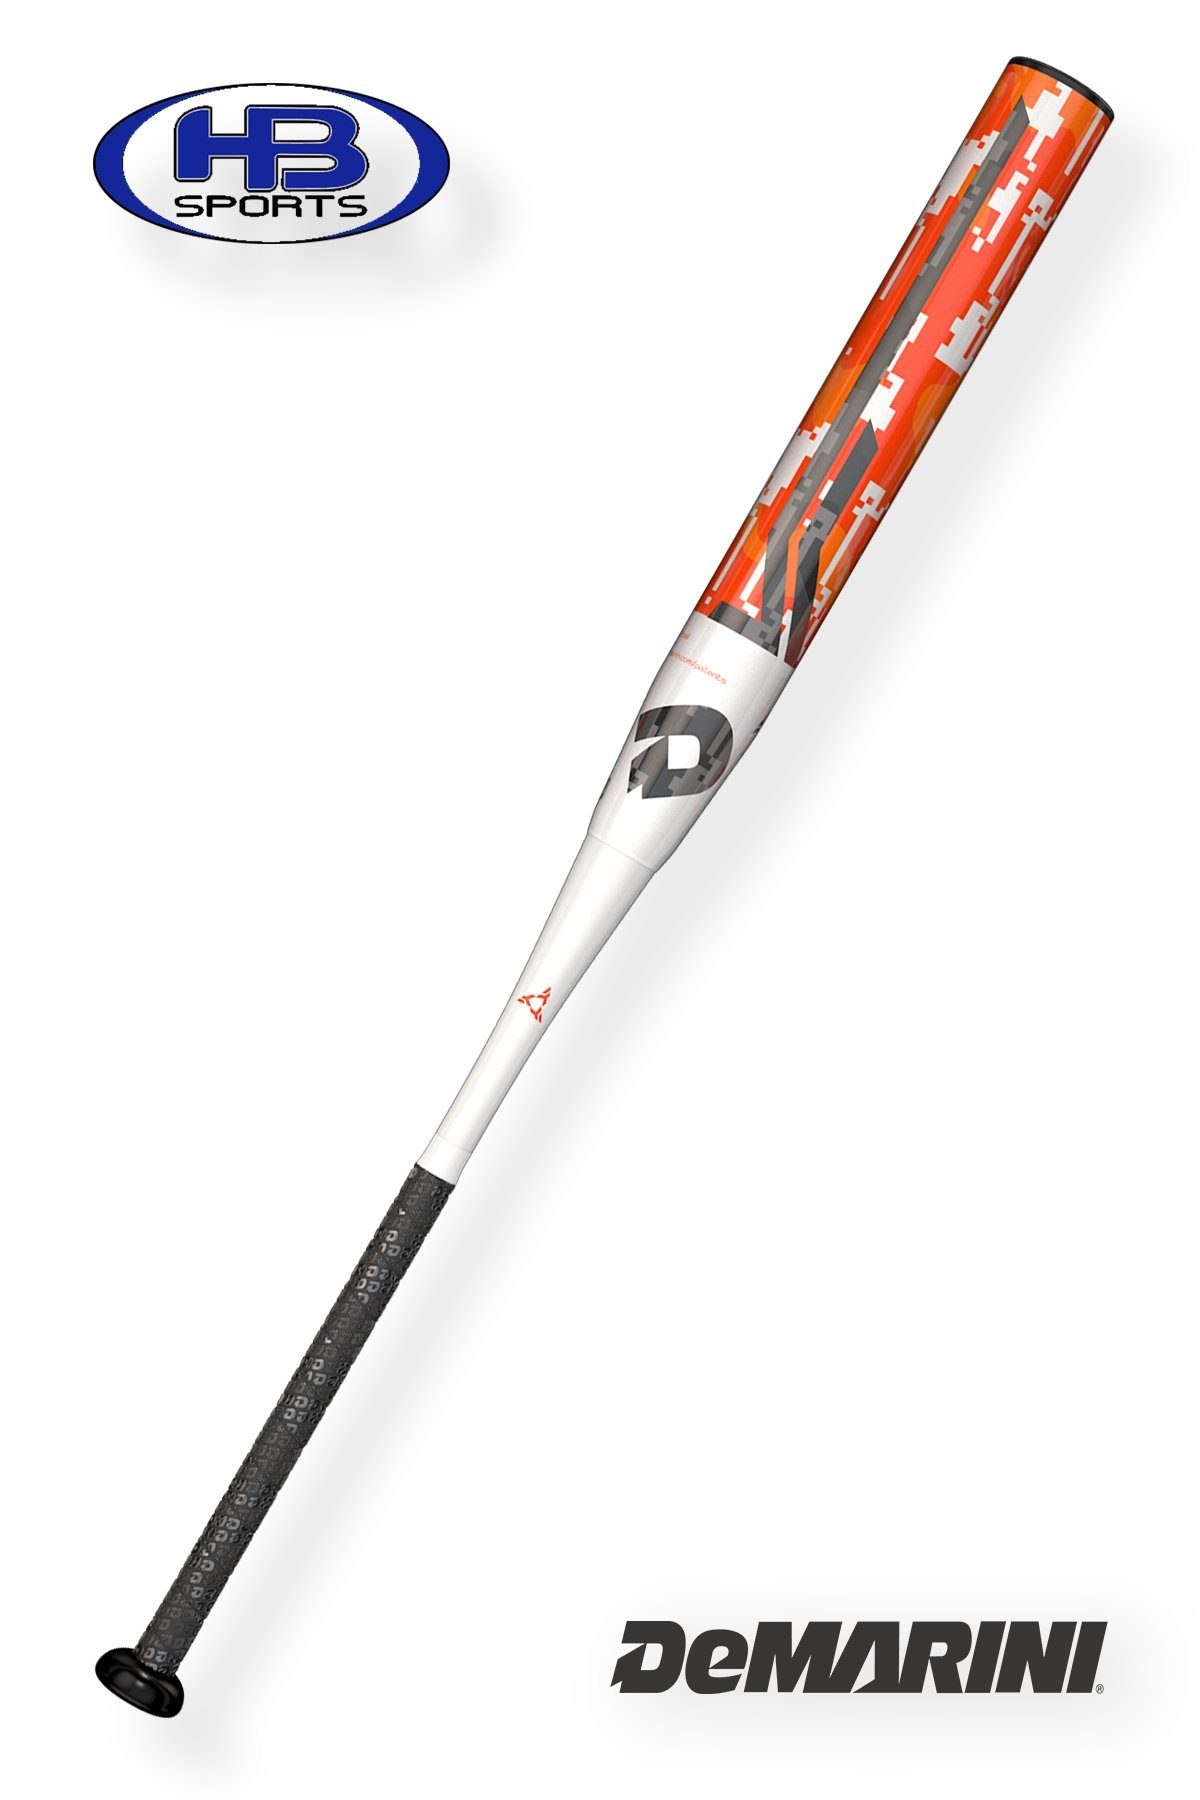 2018 Demarini Flipper Og Asa Slowpitch Softball Bat Wtdxfls 18